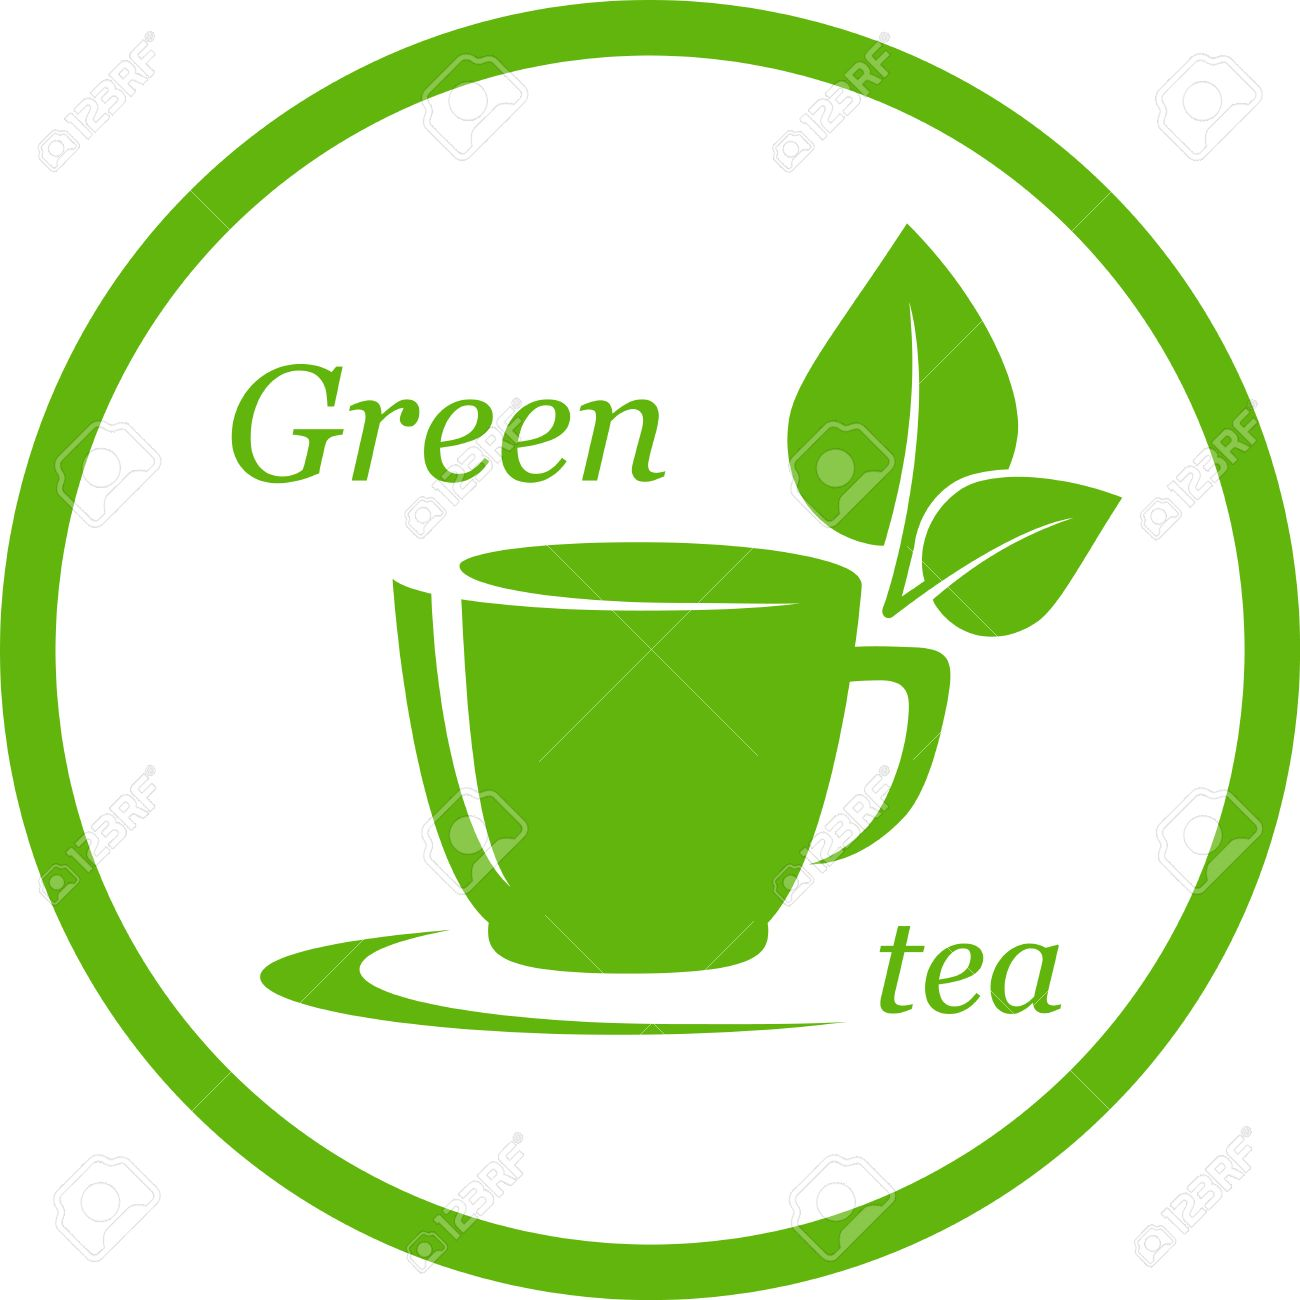 Leaf Icon Green Tea Icon With Leaf in